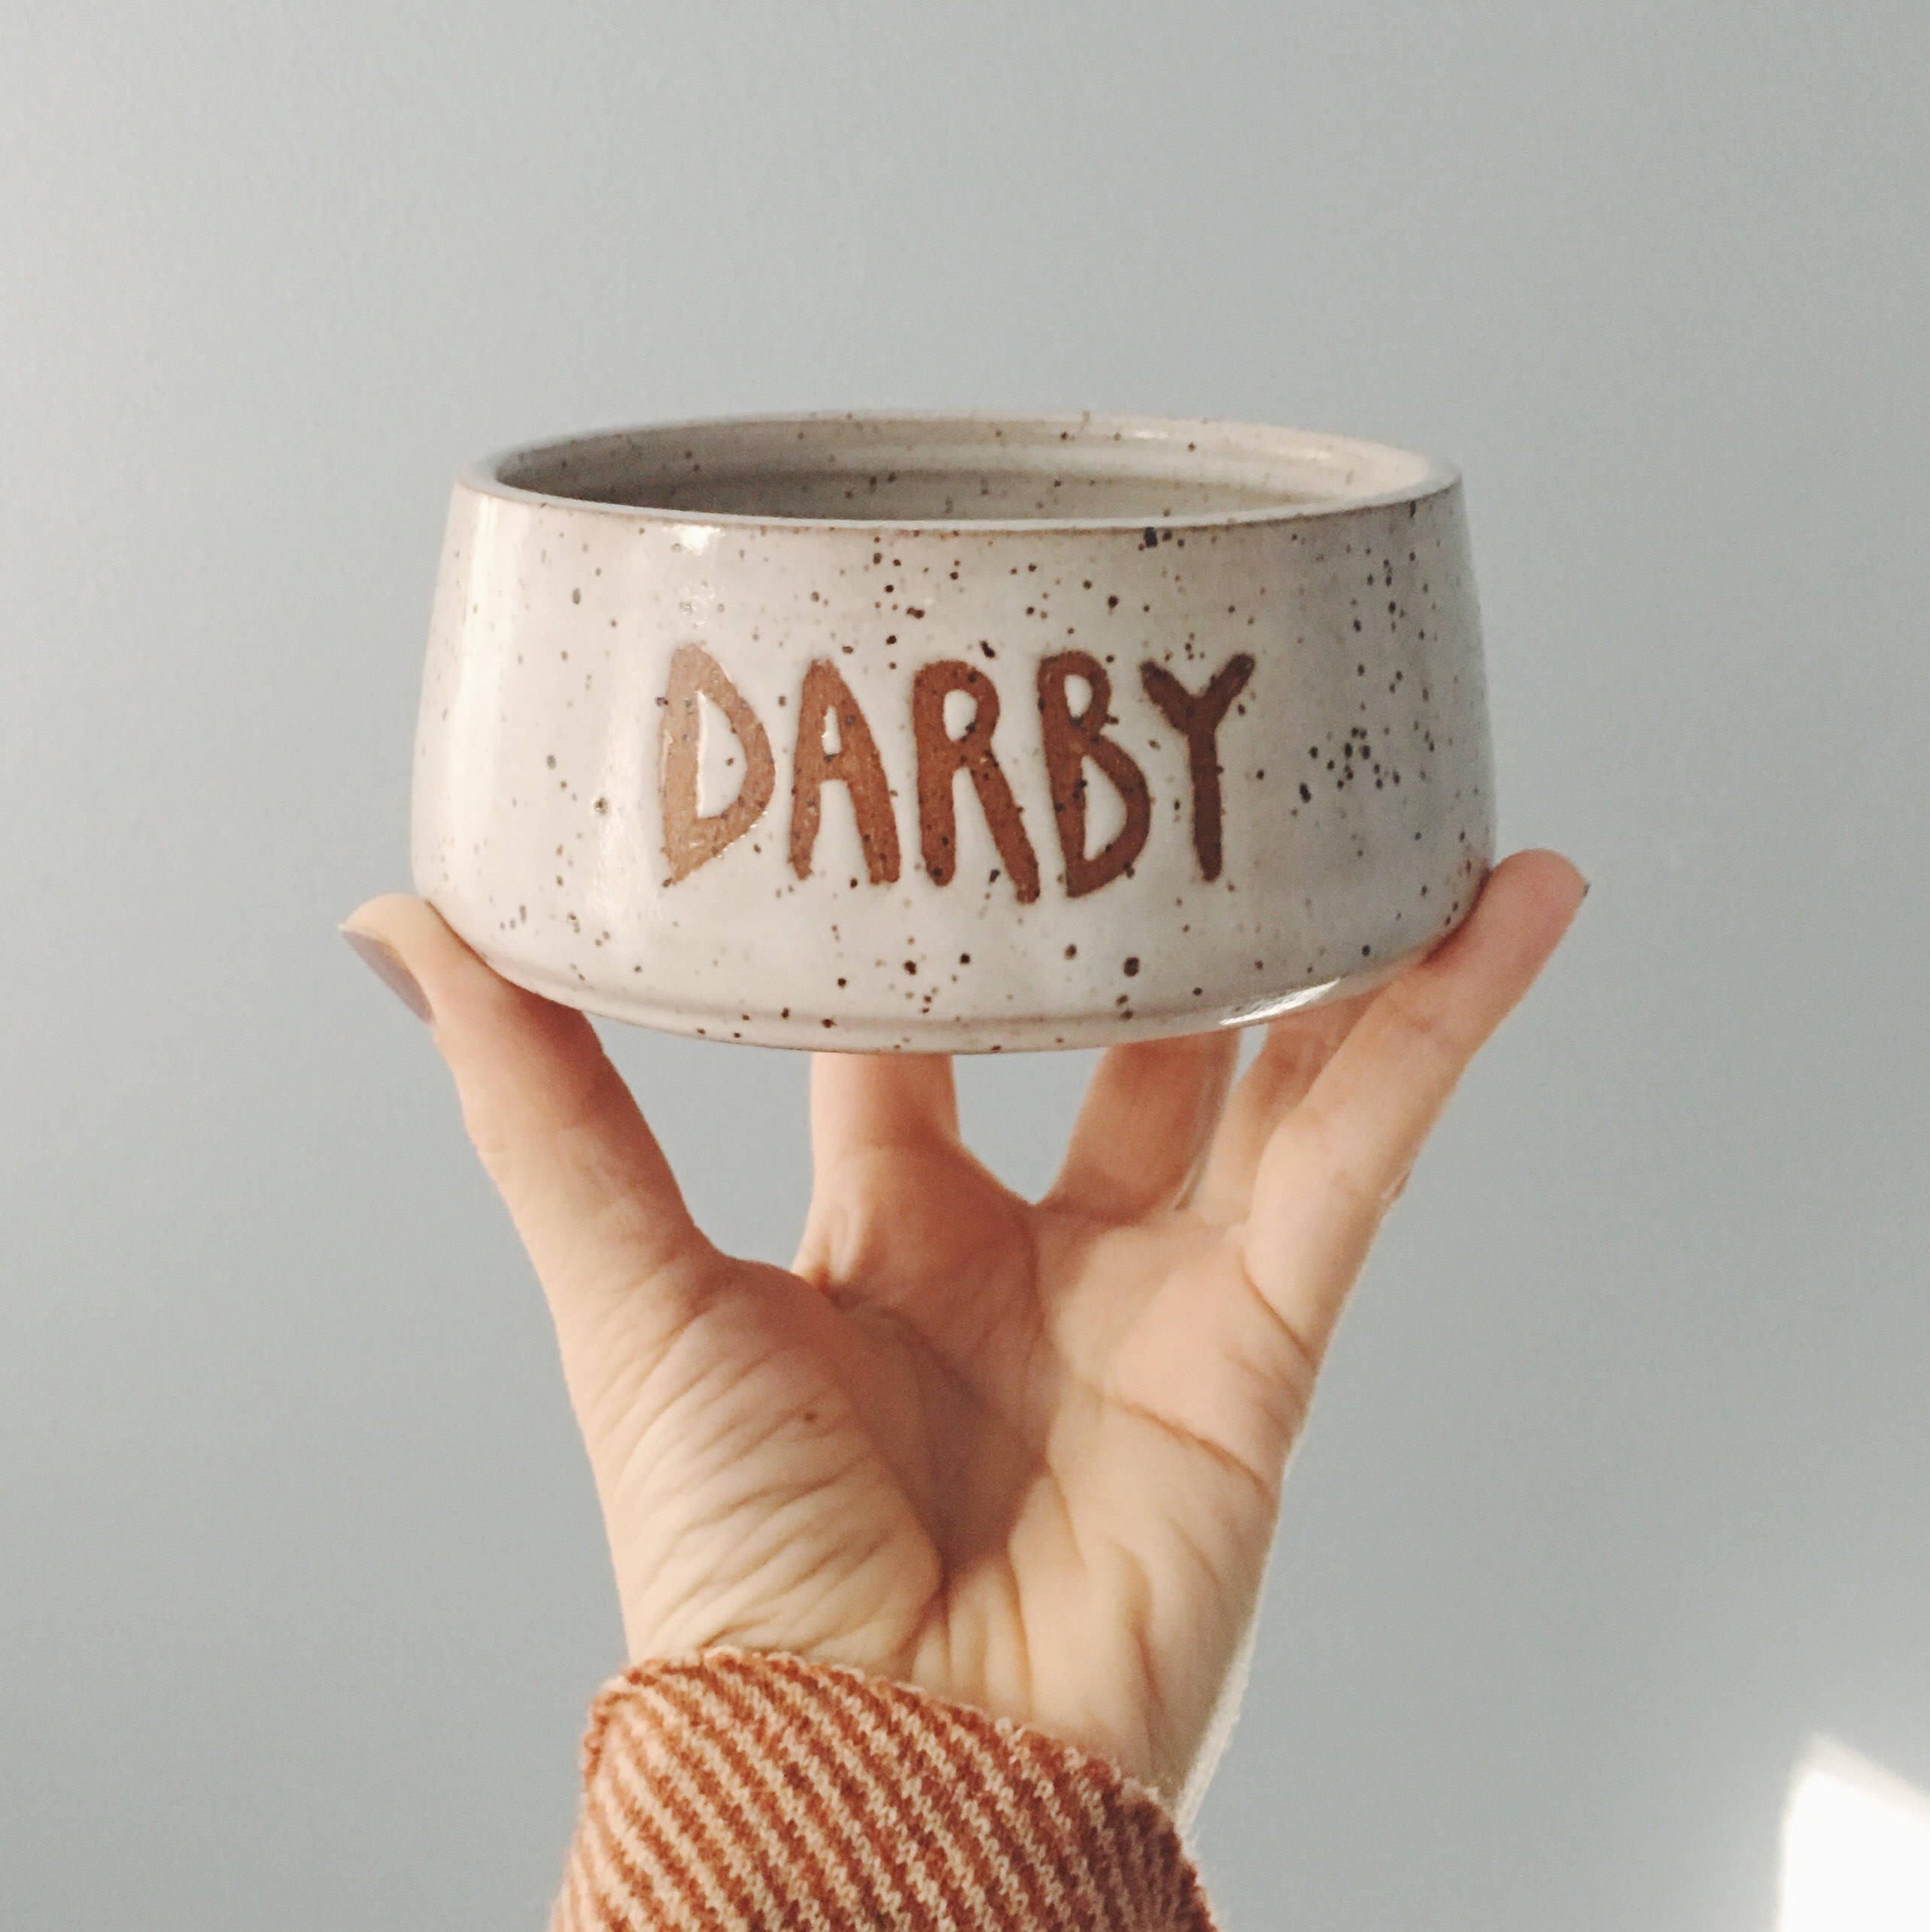 An image of a hand-spun clay bowl, the perfect eco-friendly gift for your pet.